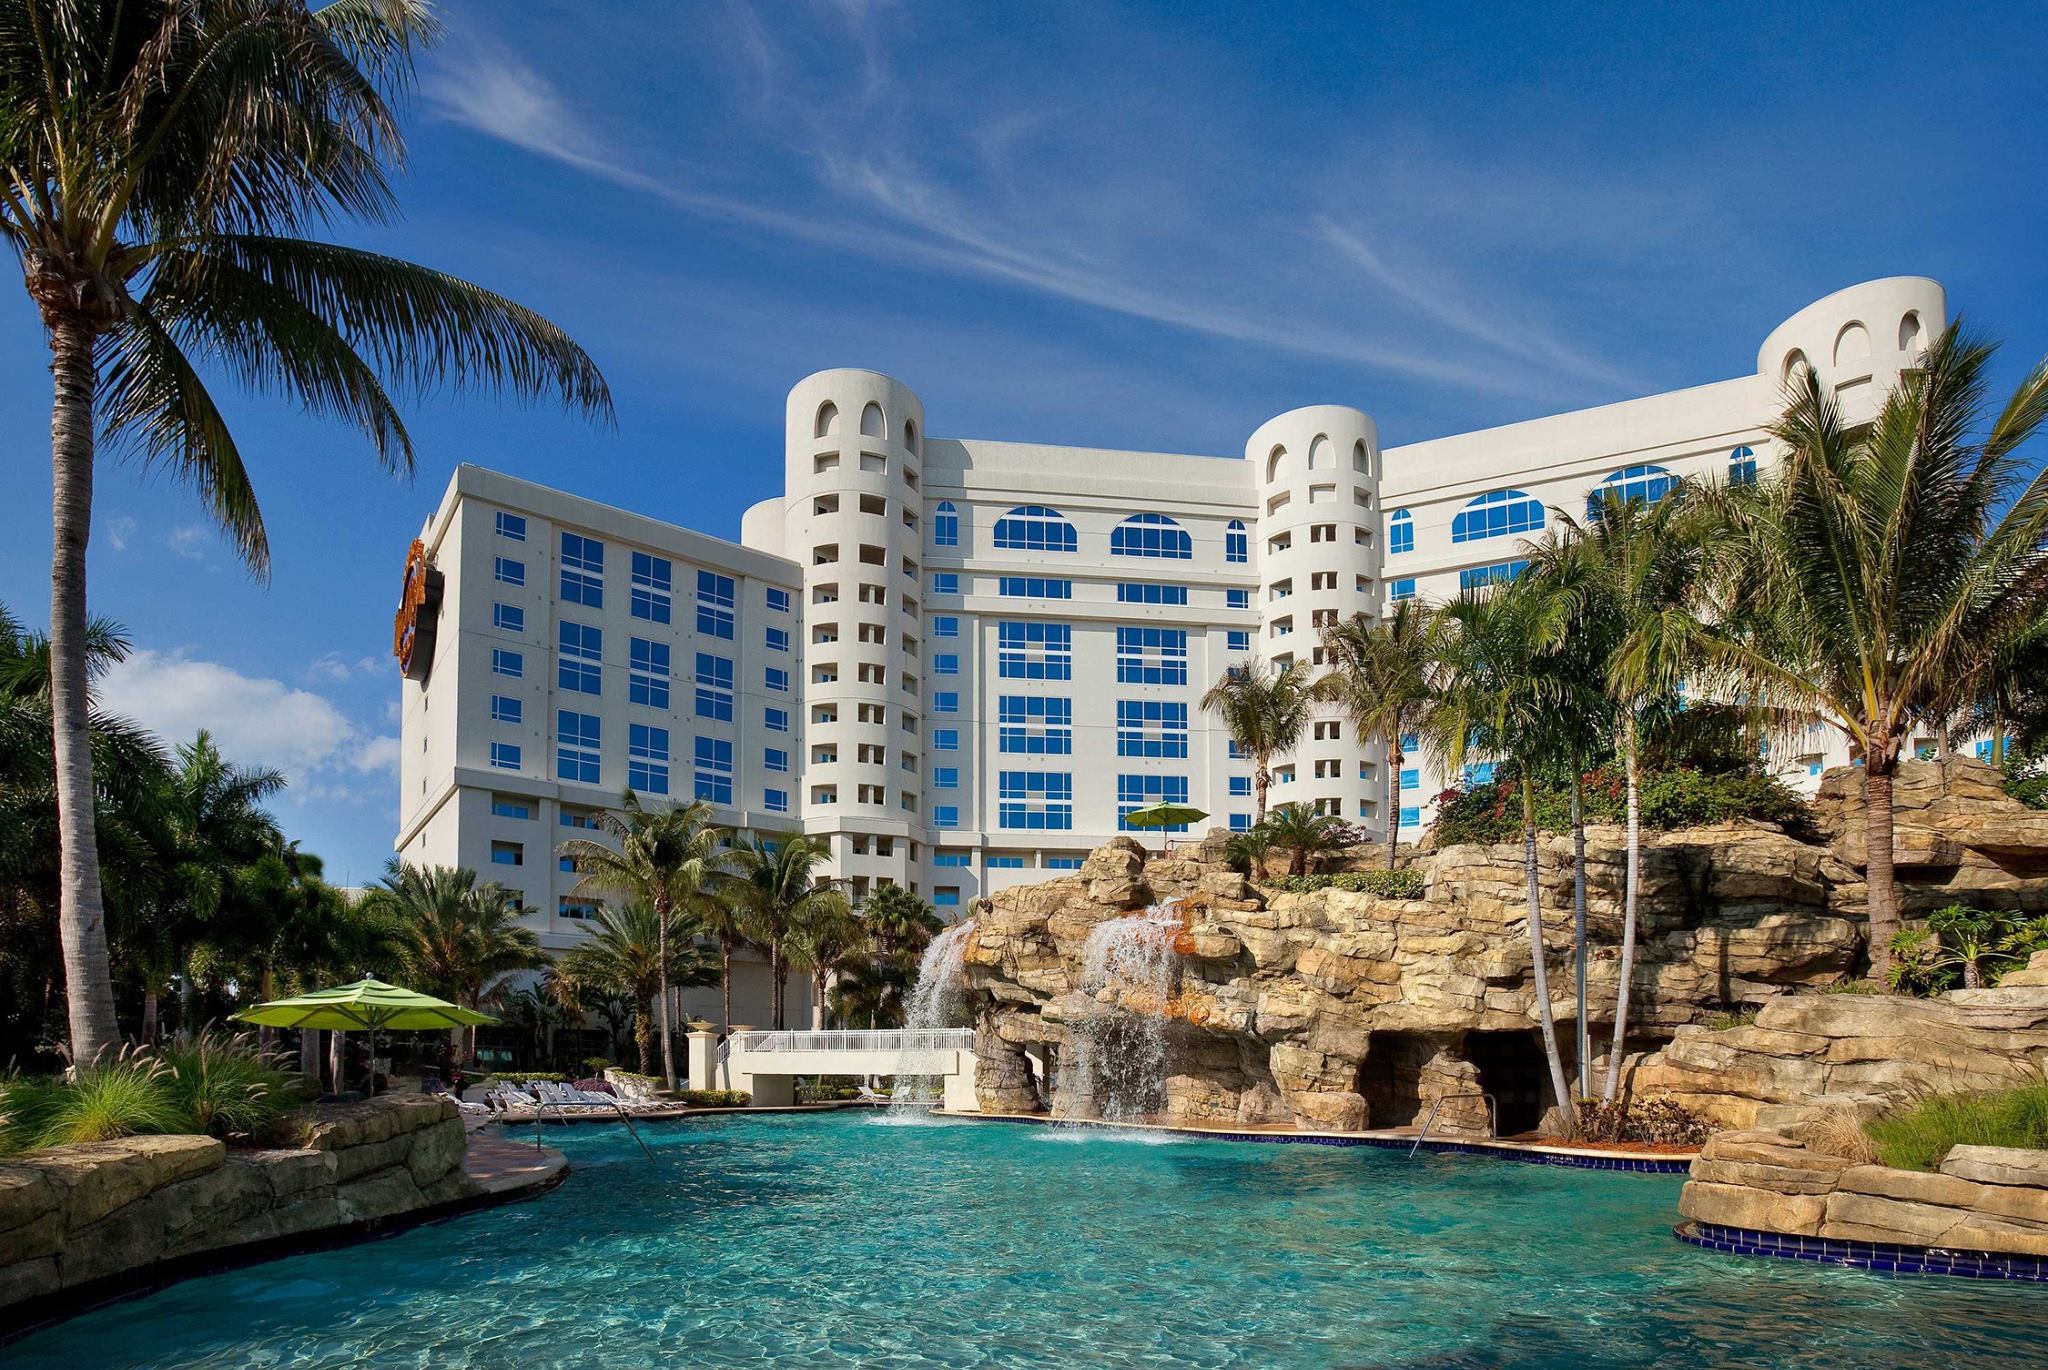 Seminole Tribe still shares gaming revenue despite lack of compact